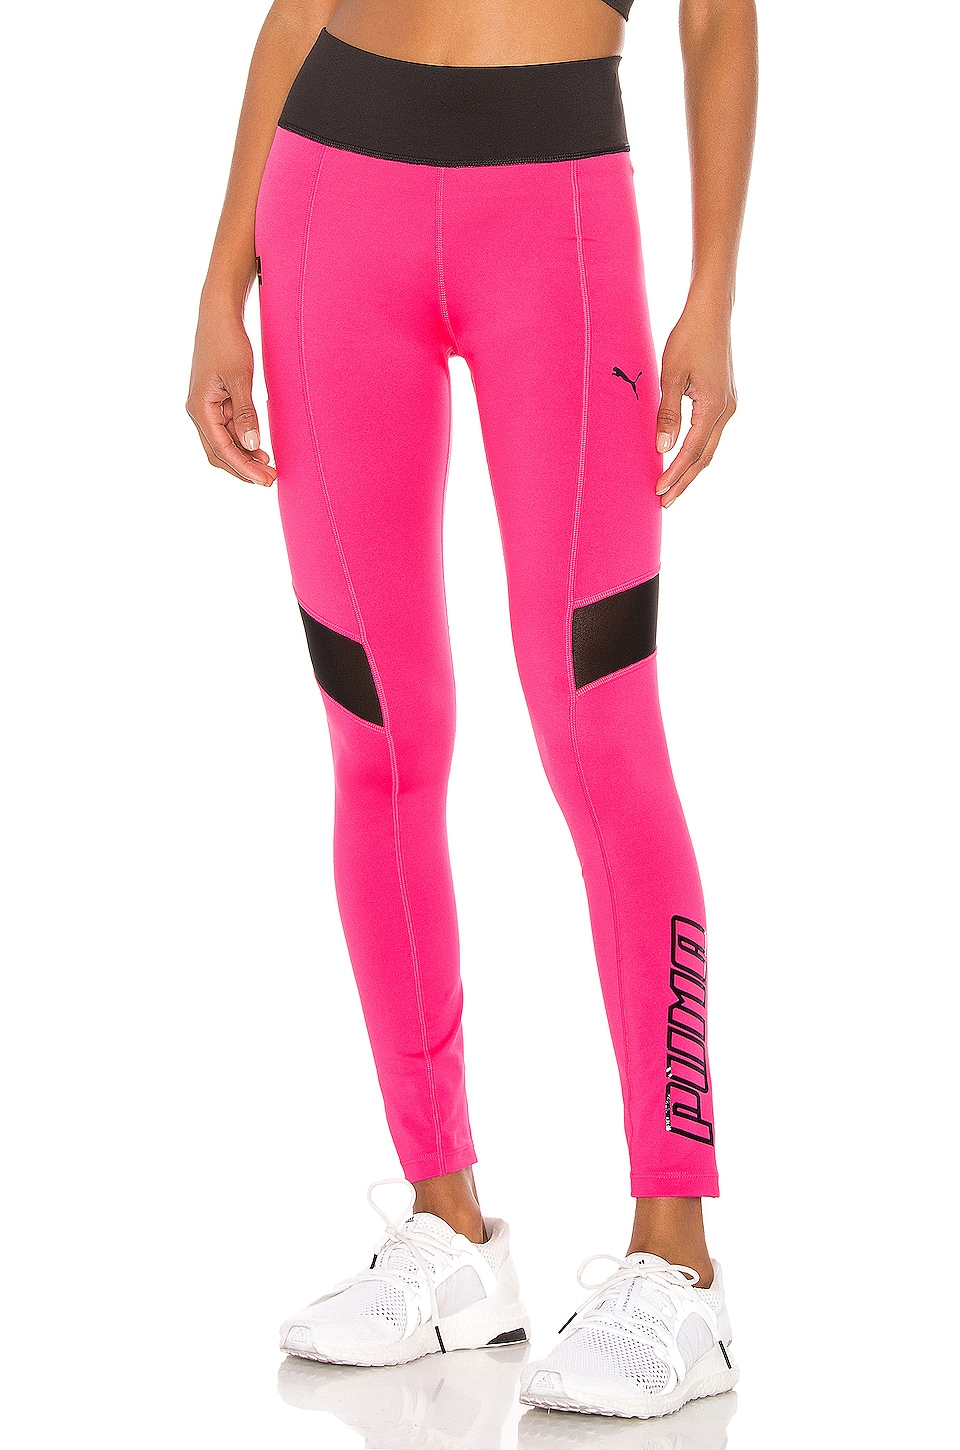 Puma Trail Blazer Legging in Fuchsia Purple